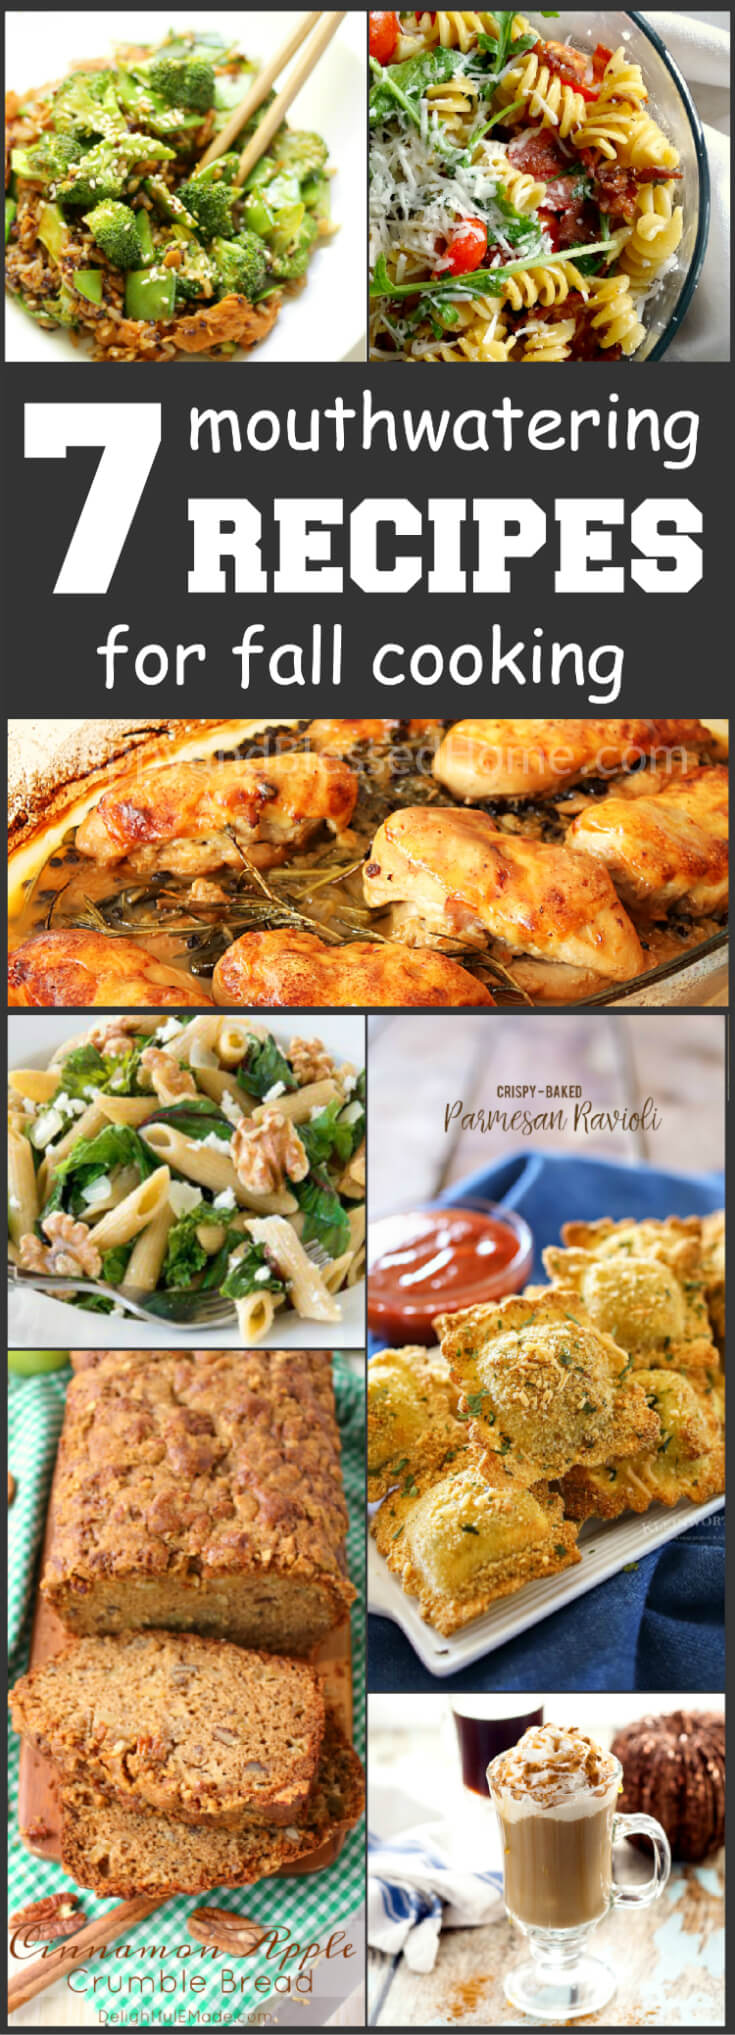 new-and-unbelievably-good-collection-of-7-mouthwatering-recipes-for-fall-must-try